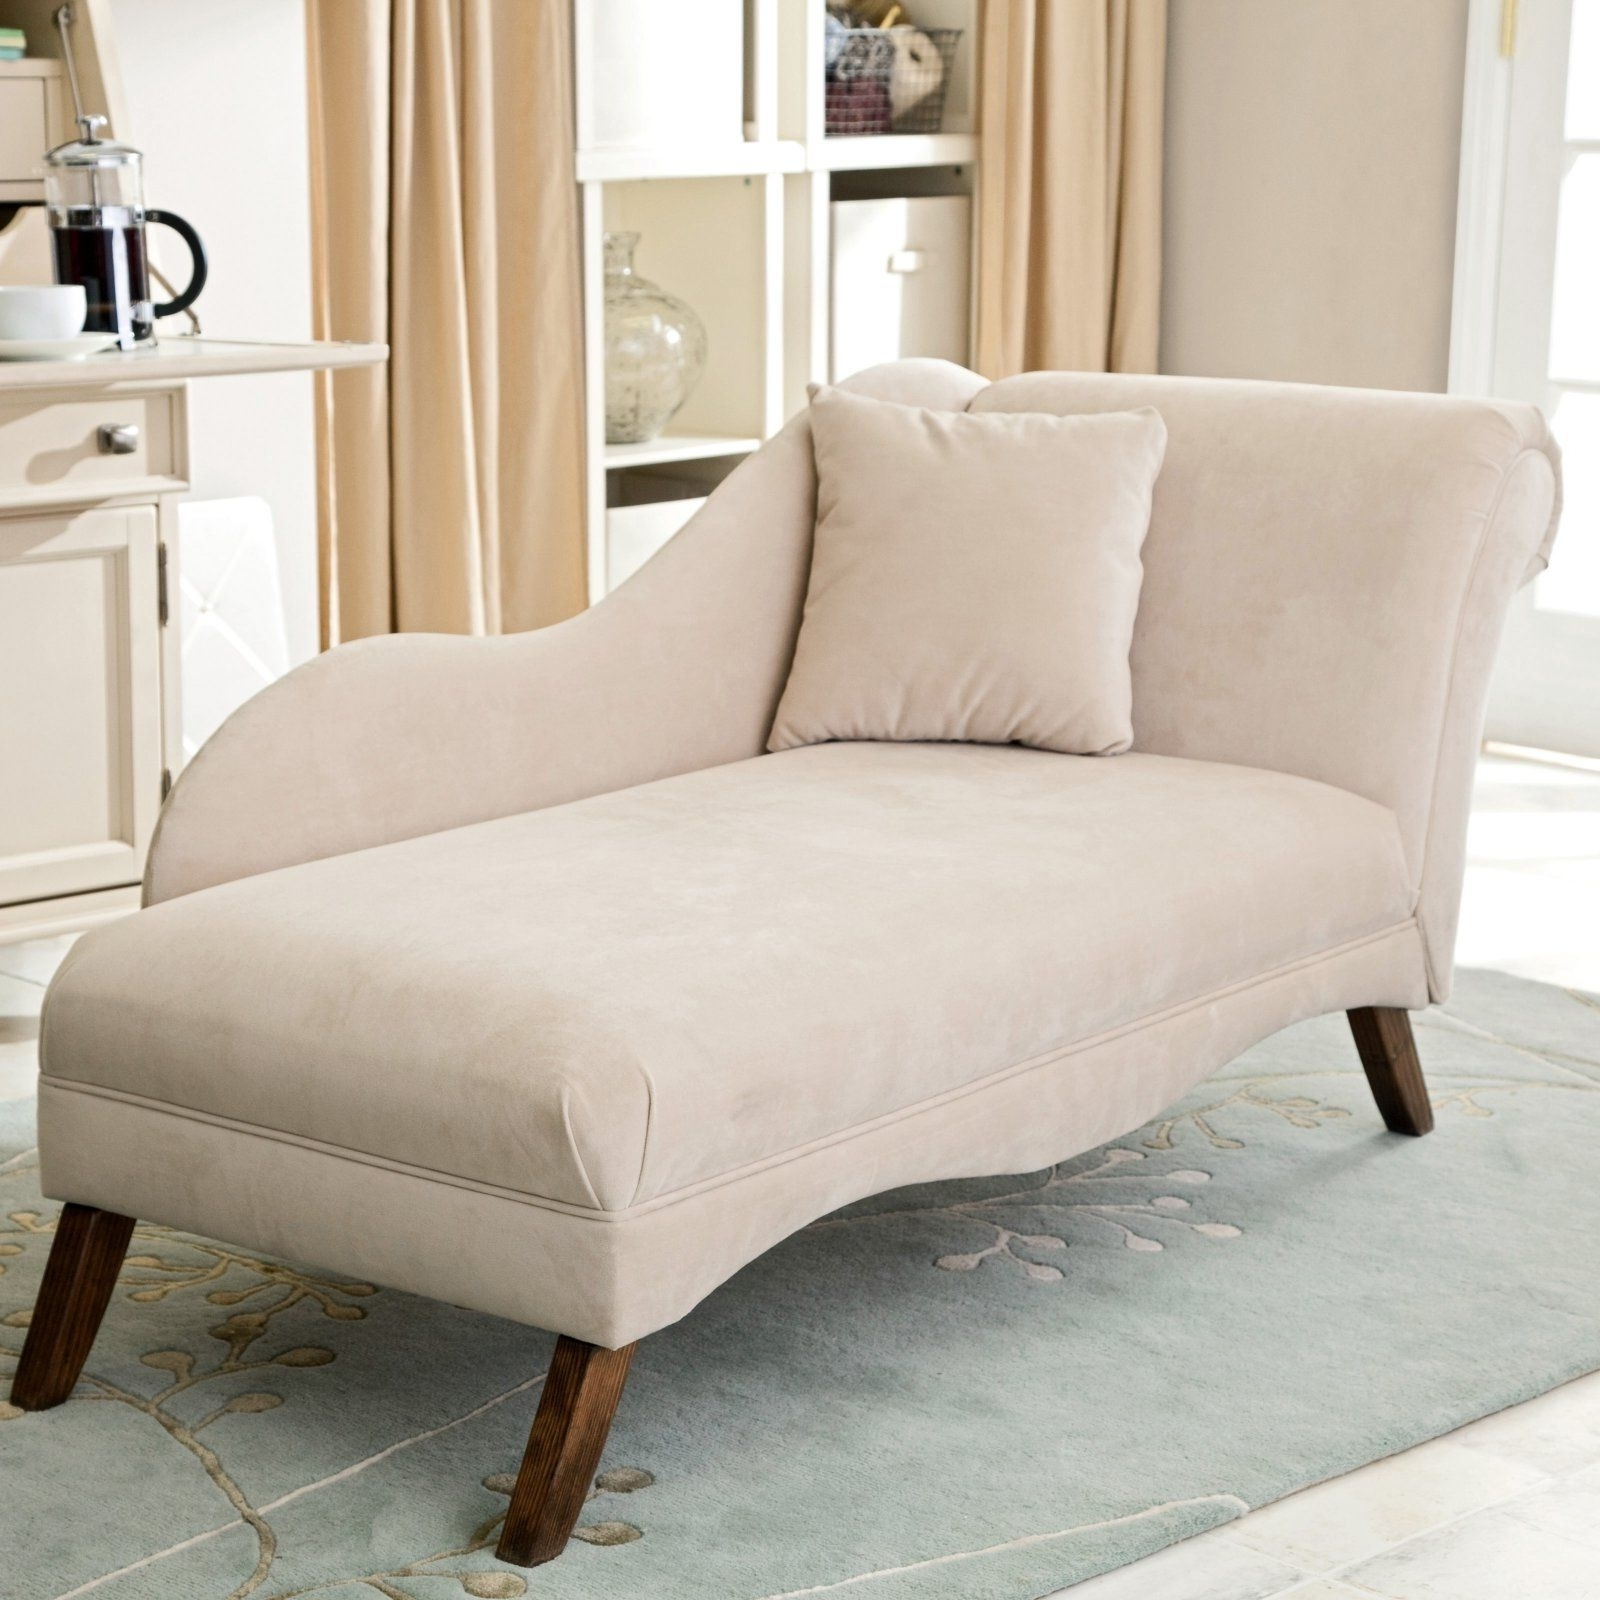 Trendy Cream Chaise Lounges Pertaining To Convertible Chair : Cream Chaise Longue Chaise Lounge Ikea Ivory (View 6 of 15)